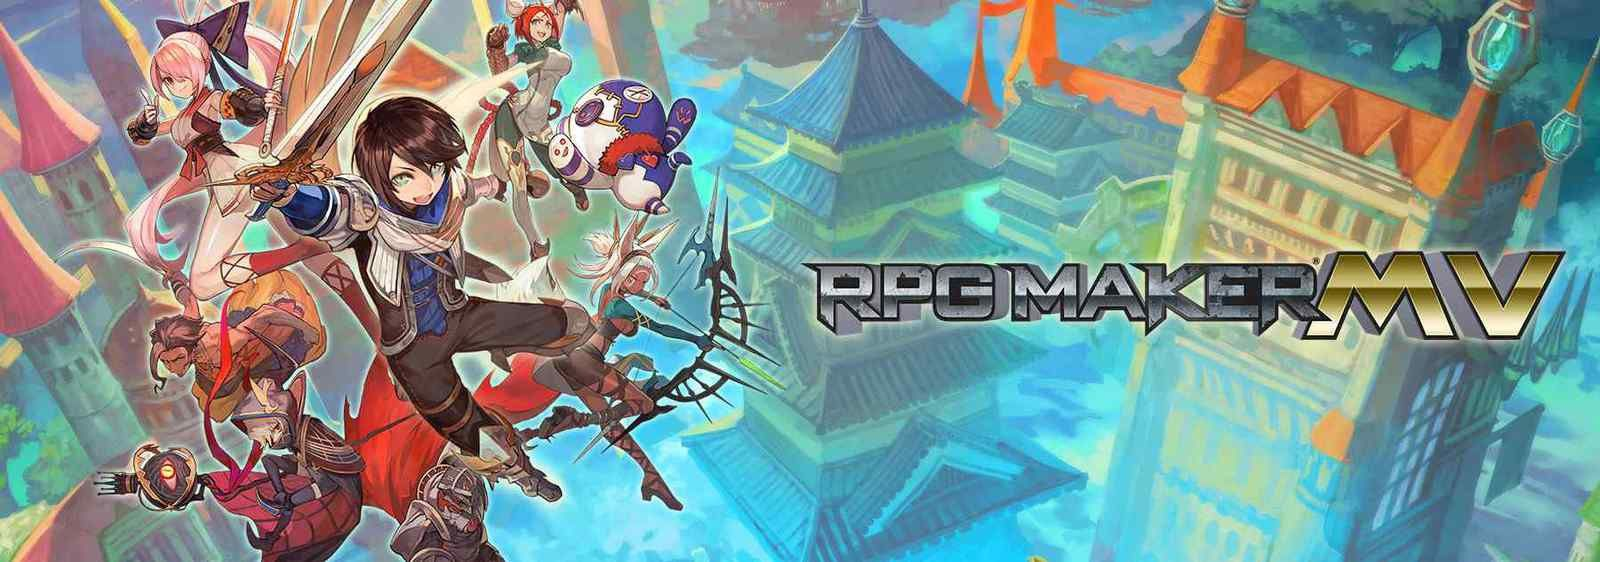 RPG Maker MV : la version Xbox One finalement annulée